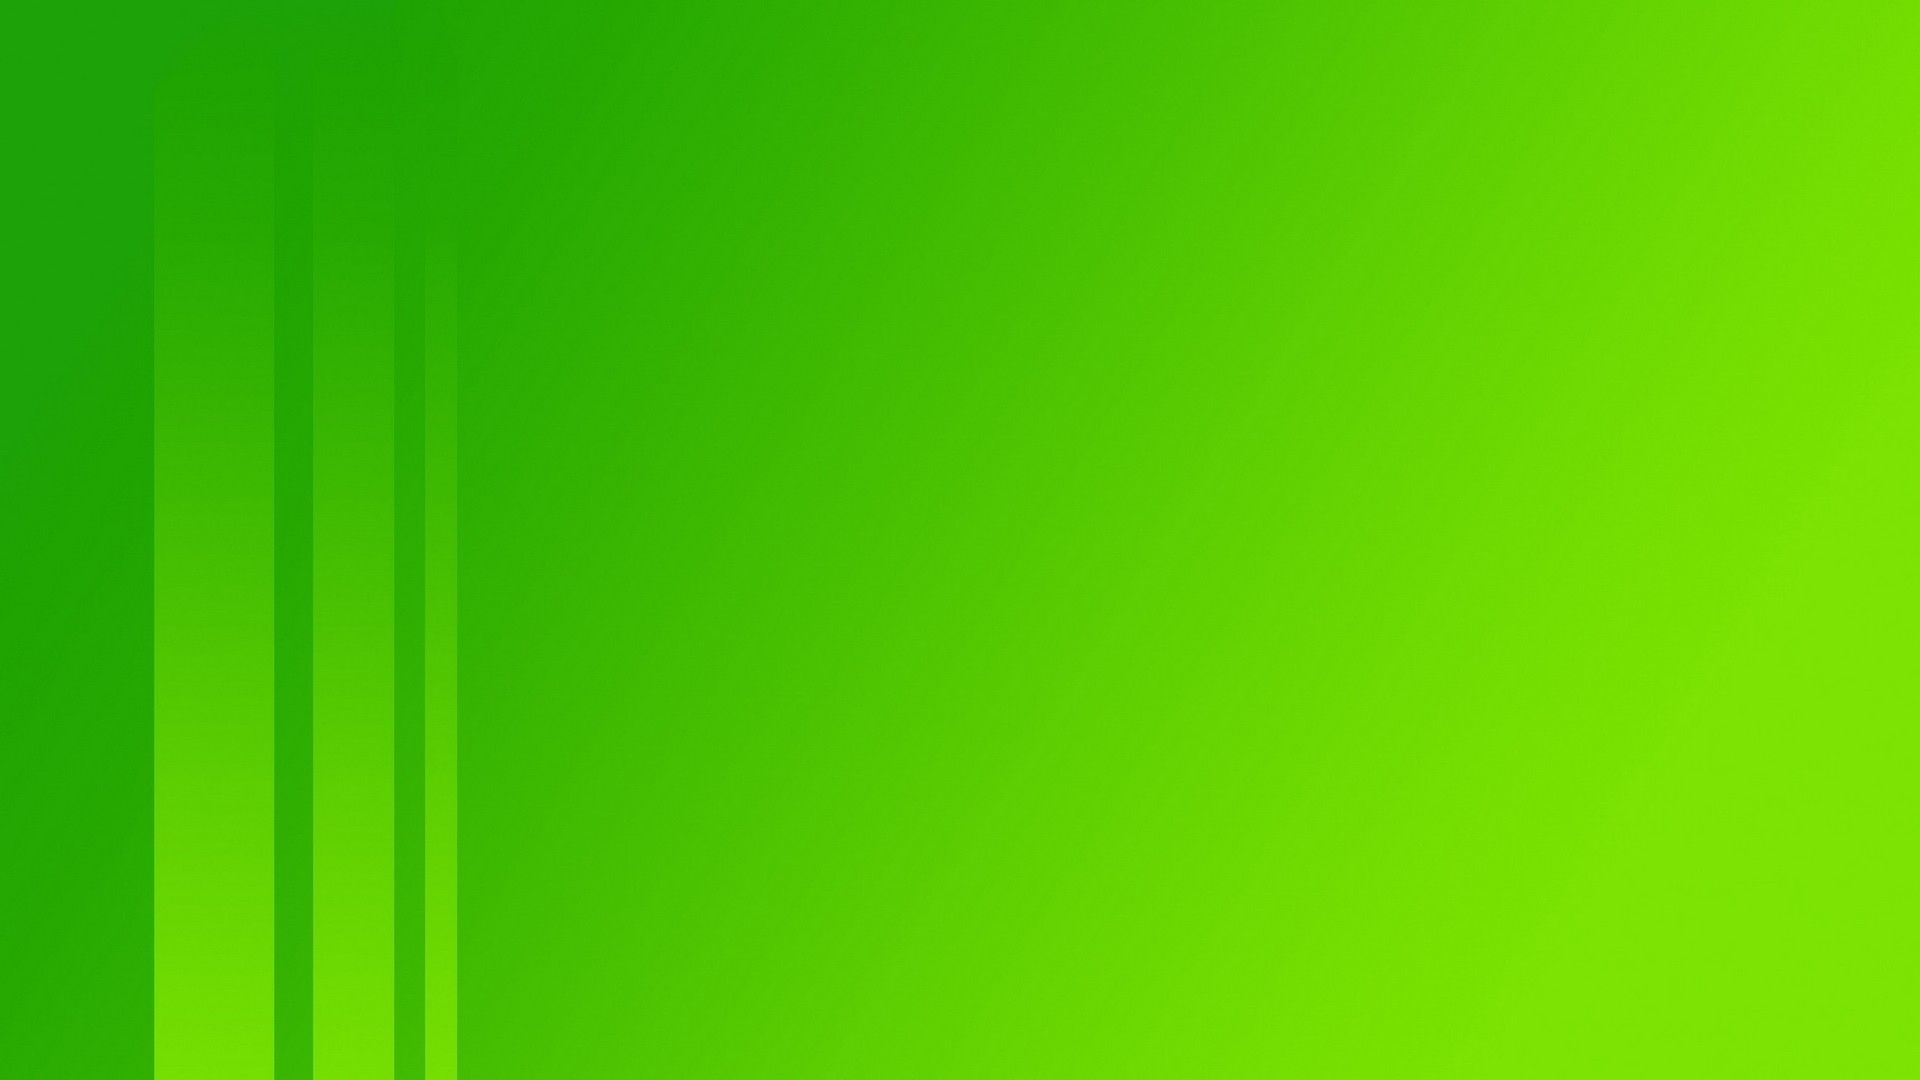 1920x1080 Green Wallpapers HD | PixelsTalk.Net